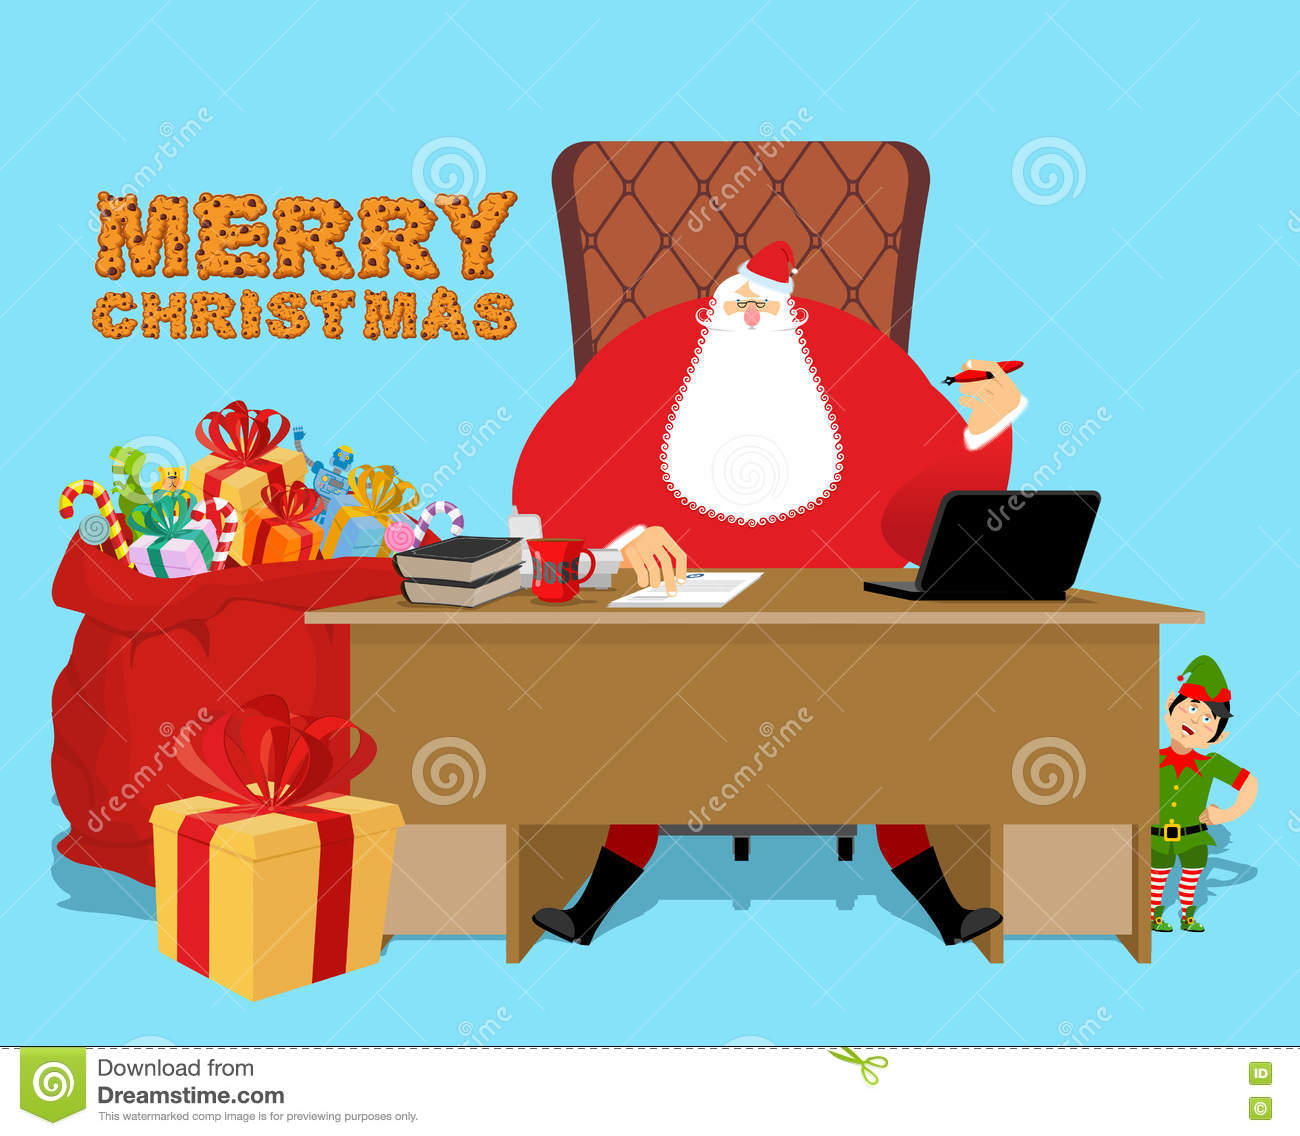 christmas work desk and chair boss grandpa director of new year cheerful elf santas magic residence at north pole workplace and red gift bag fir tree